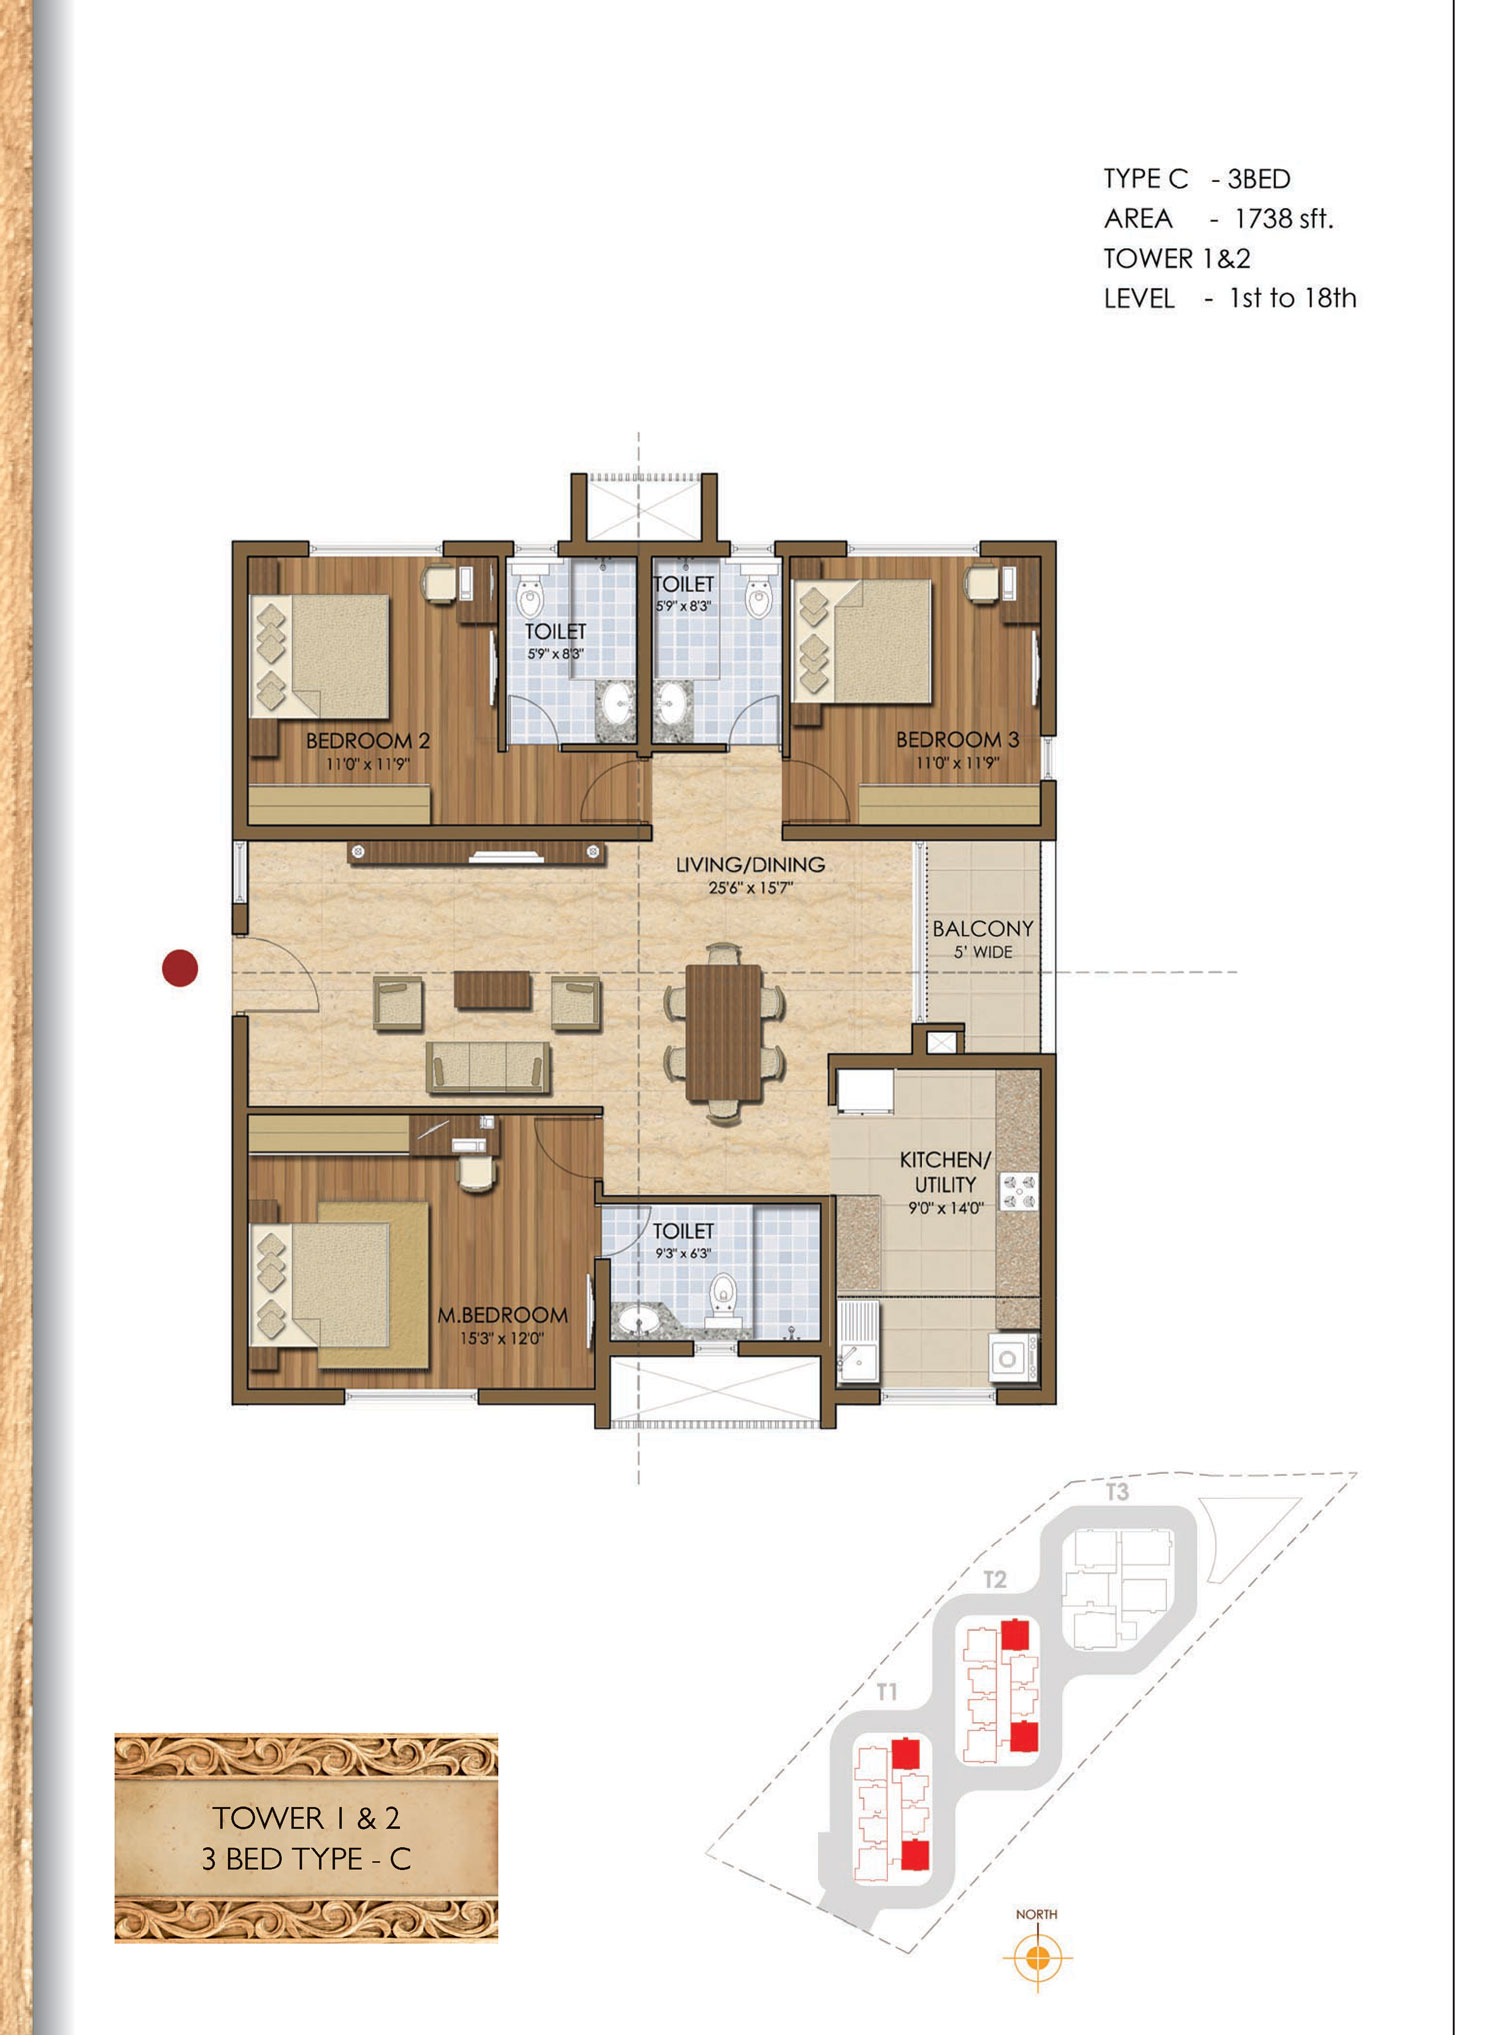 Type C - 2 Bed - 1738 Sq Ft